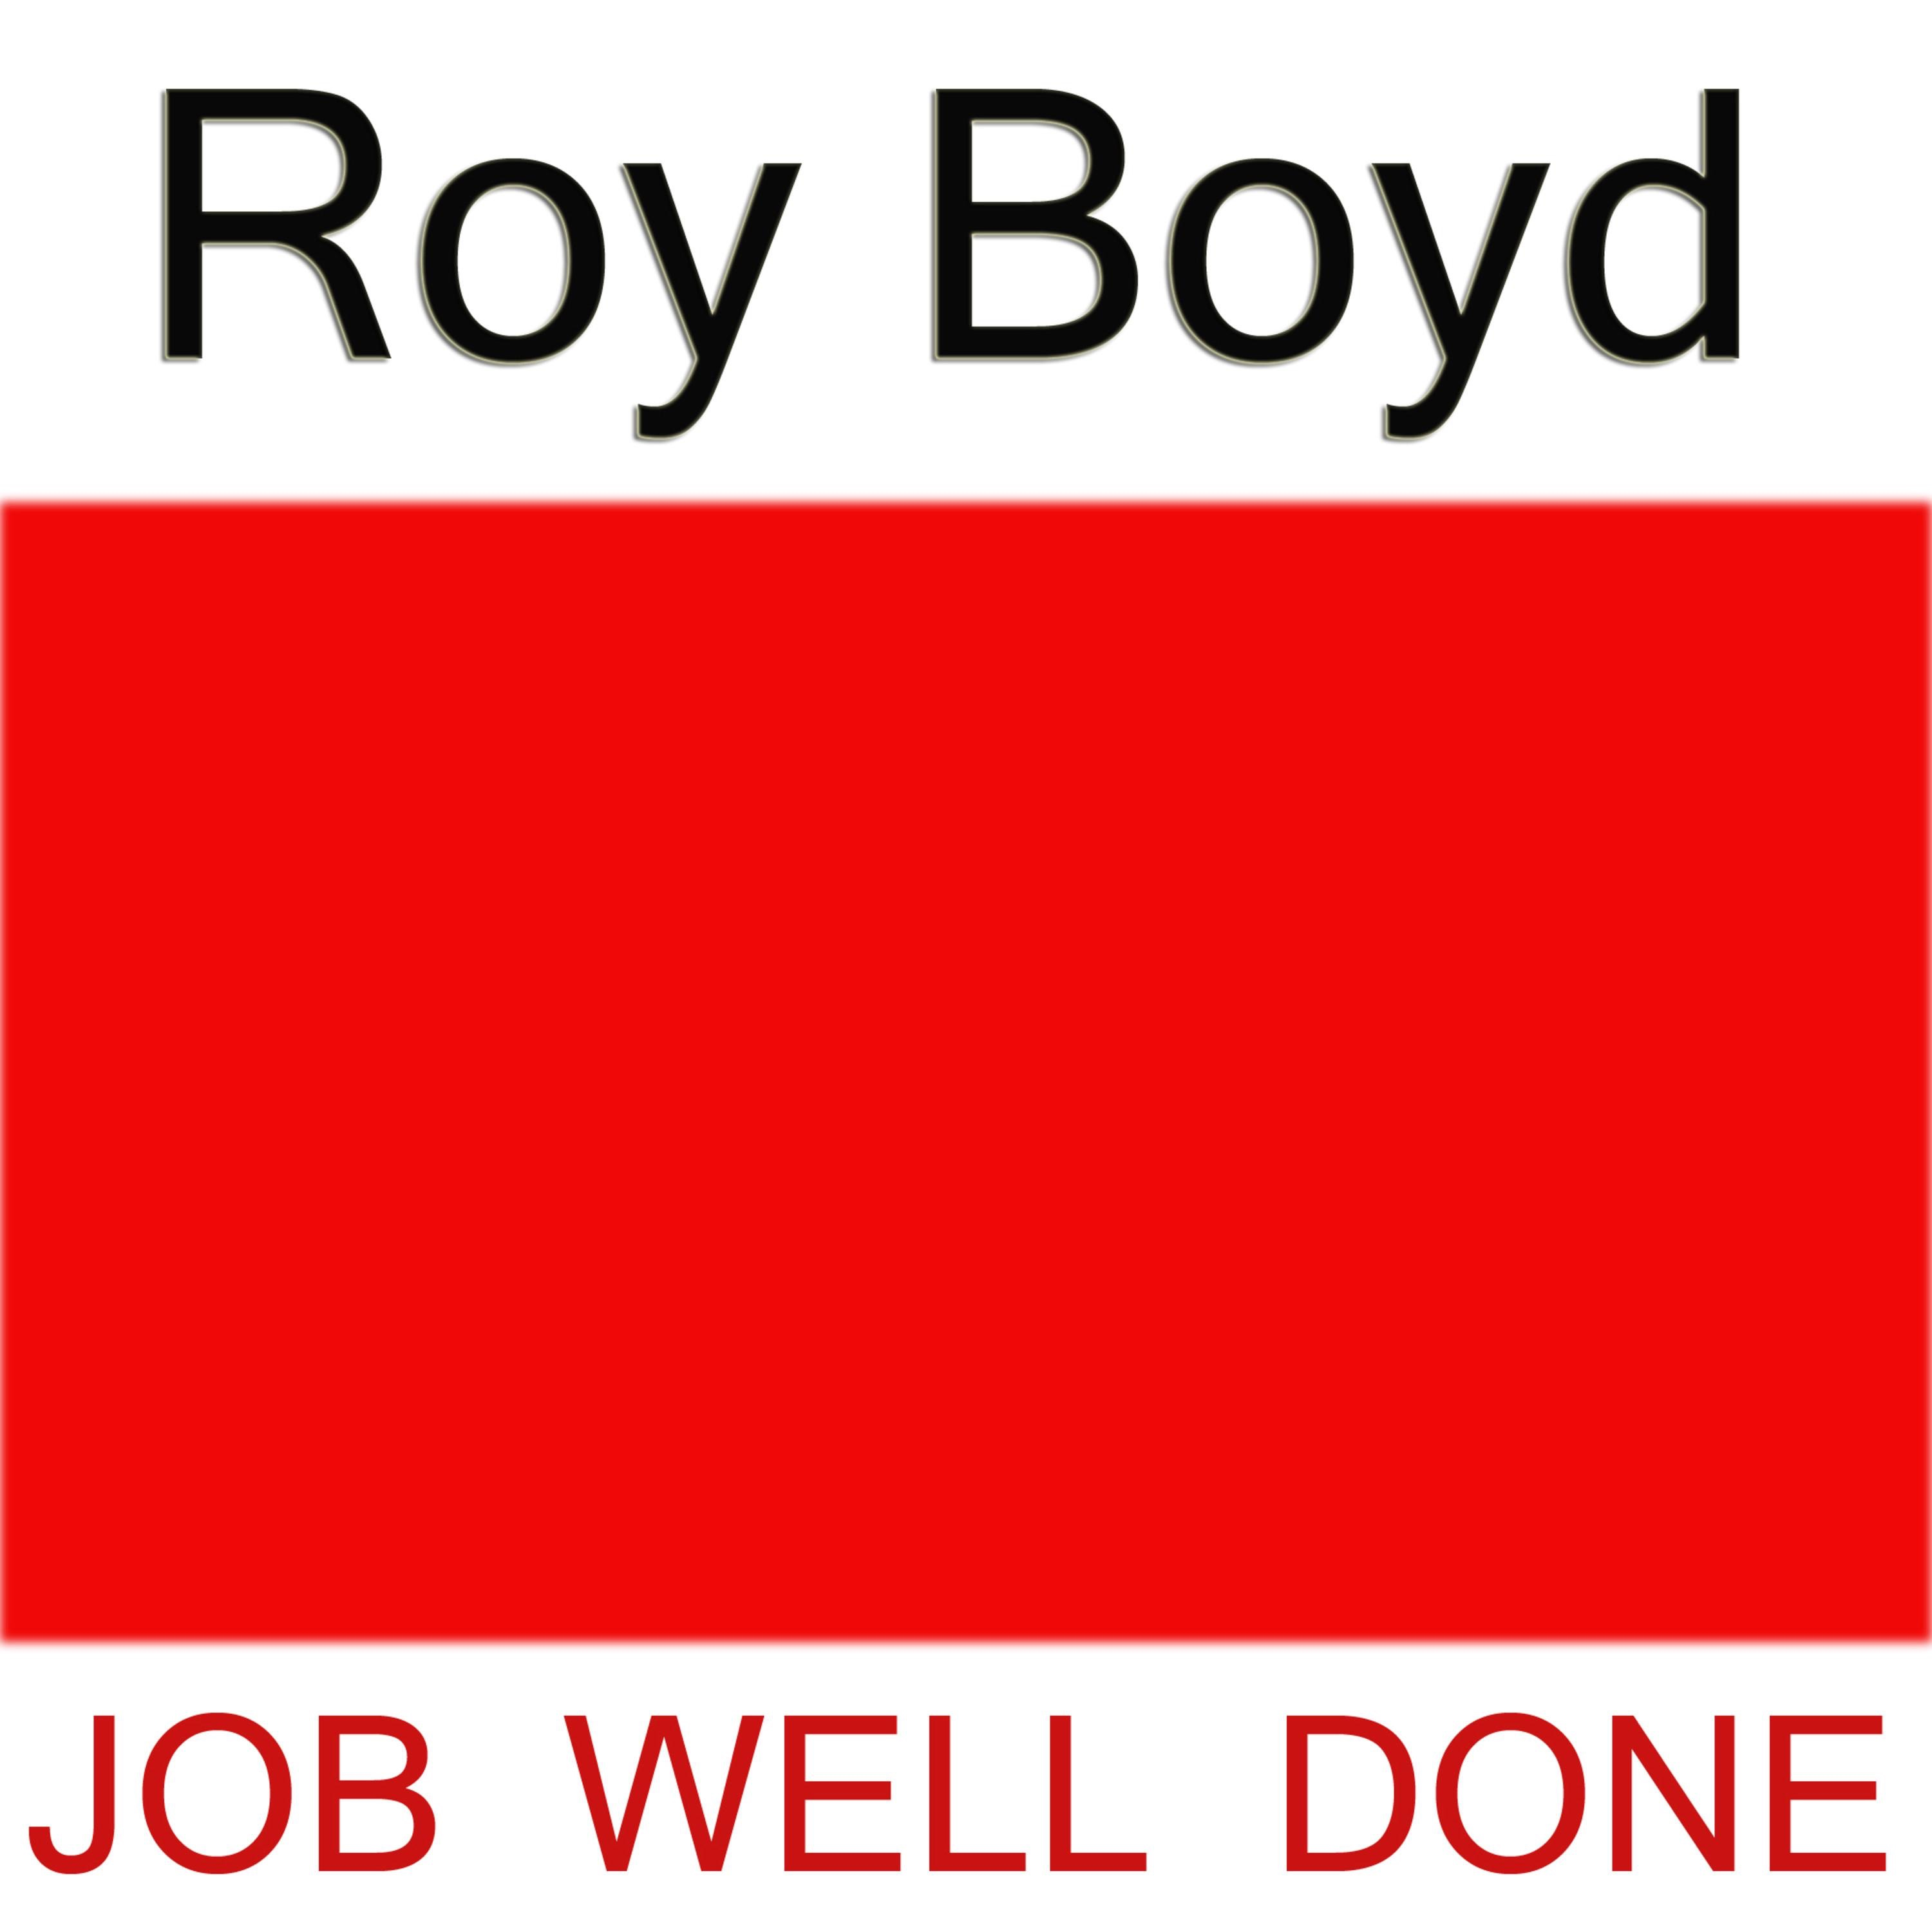 MP3 Songs Online:♫ Jenny Lee - Roy Boyd album Job Well Done. Pop,Music,Singer/Songwriter listen to music online free without downloading.